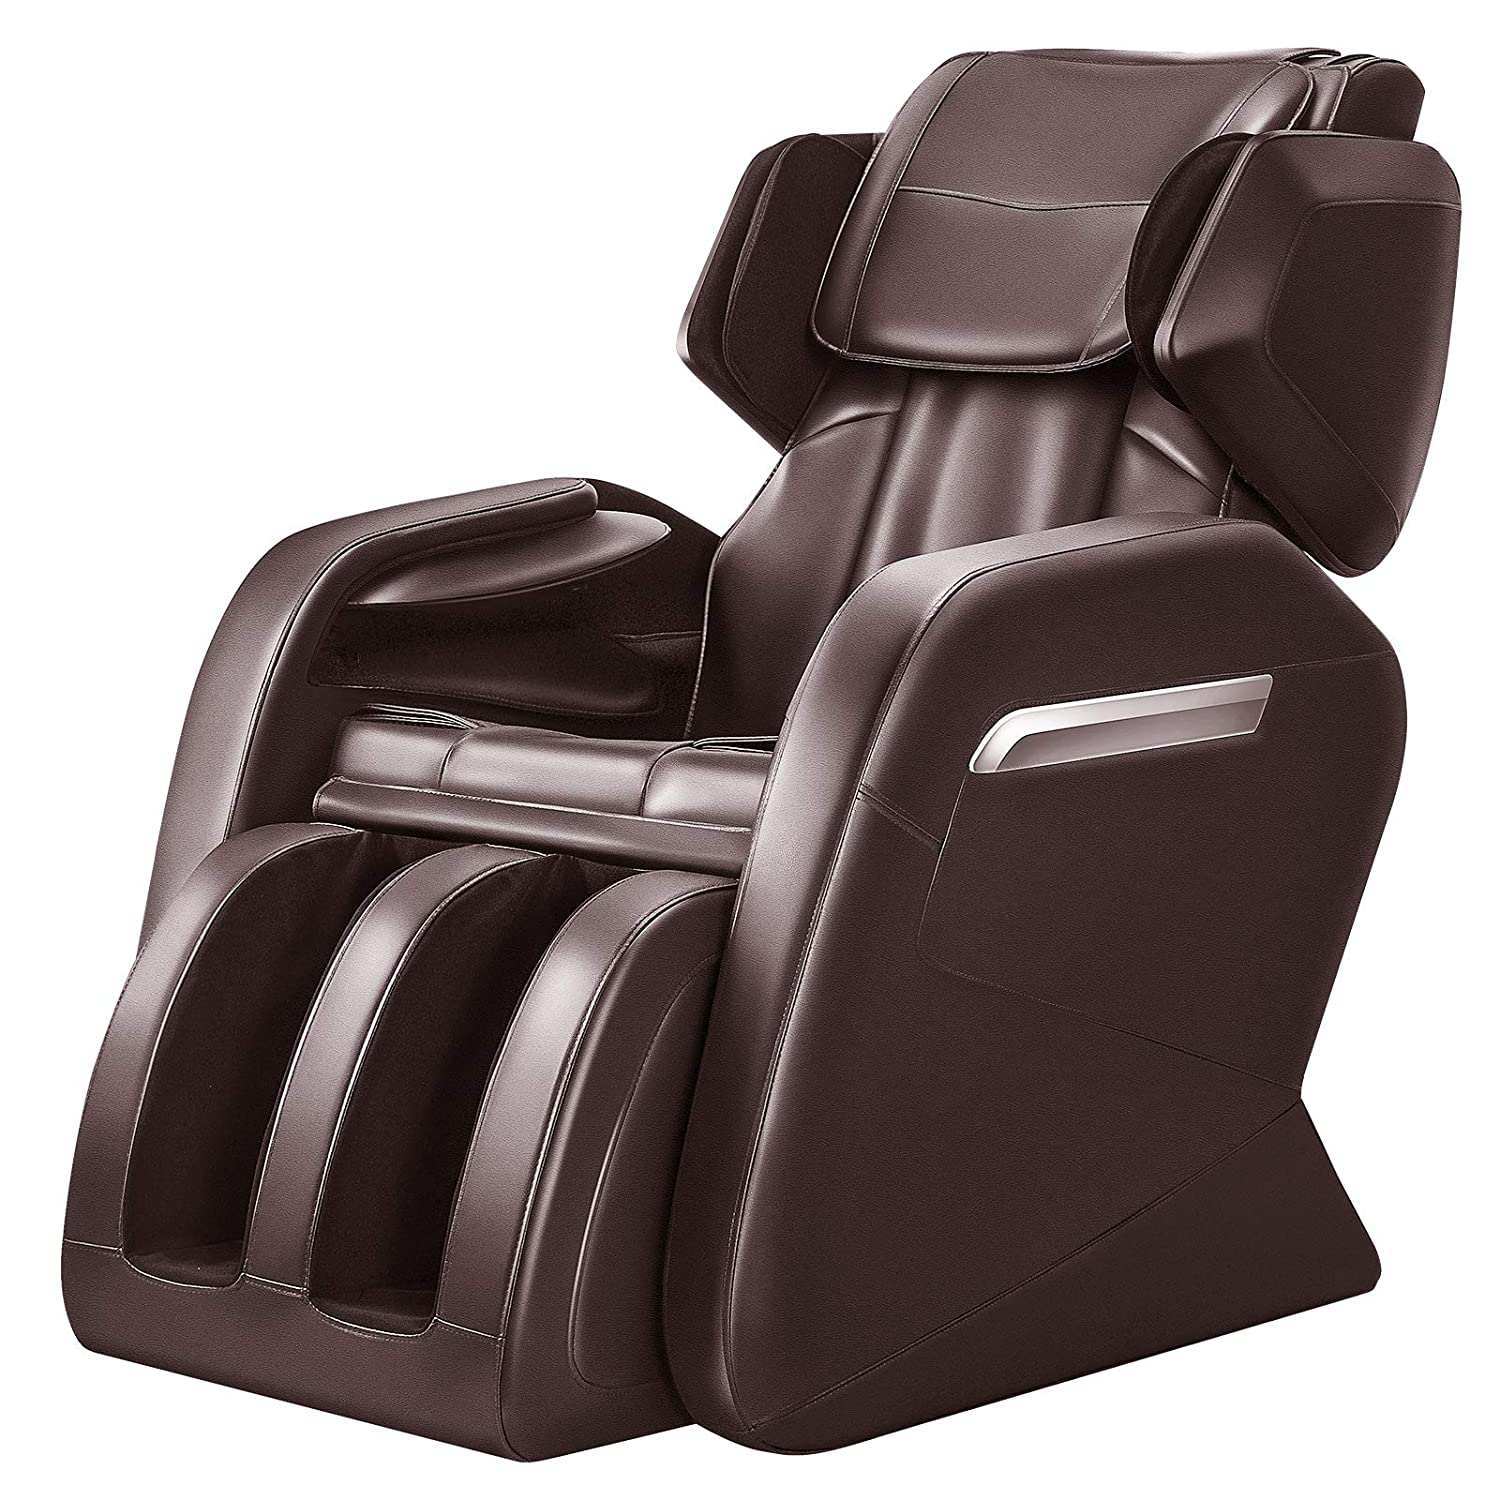 OOTORI Full Body Massage Chair, Zero Gravity Air Massage Foot Roller Shiatsu Recliner, with Heater and Vibrating Brown